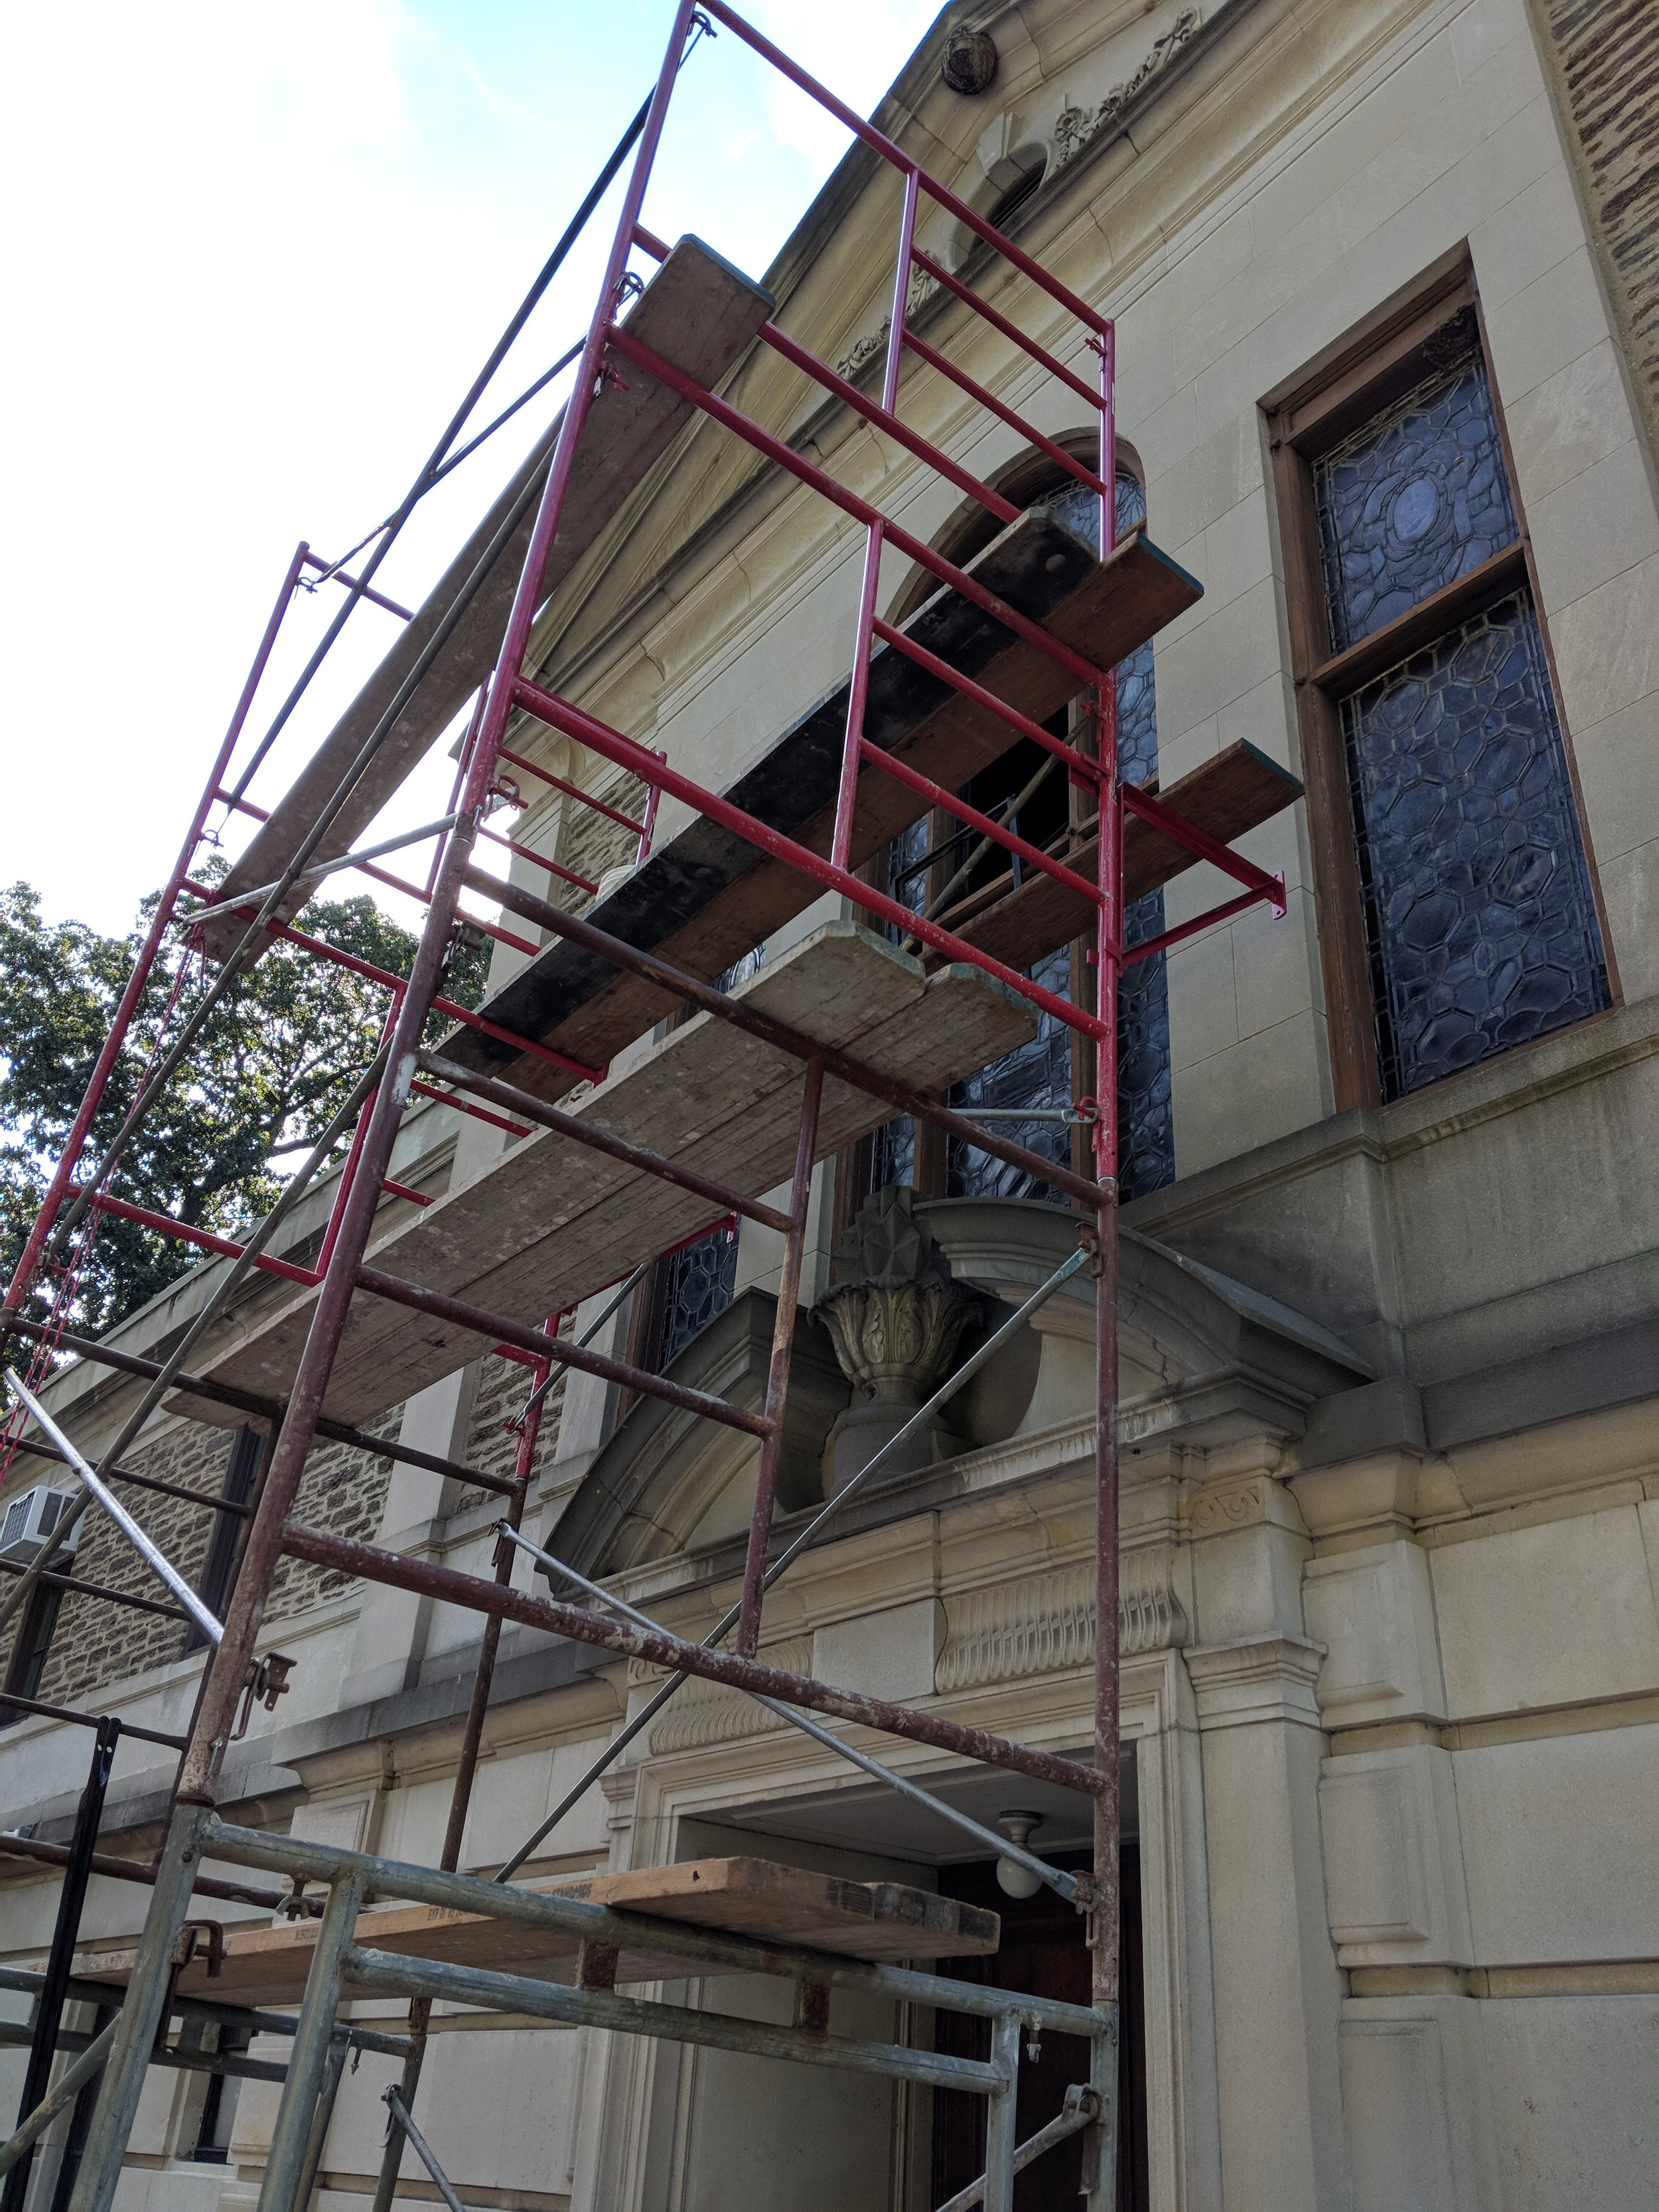 Each restoration project starts with a window assesment and condition report. During our initial consultation we will discuss how to best care for your window, and the space, time, and budget constraints of the project. If we decide a full restoration of your troubled window is necessary, we will schedule a removal.